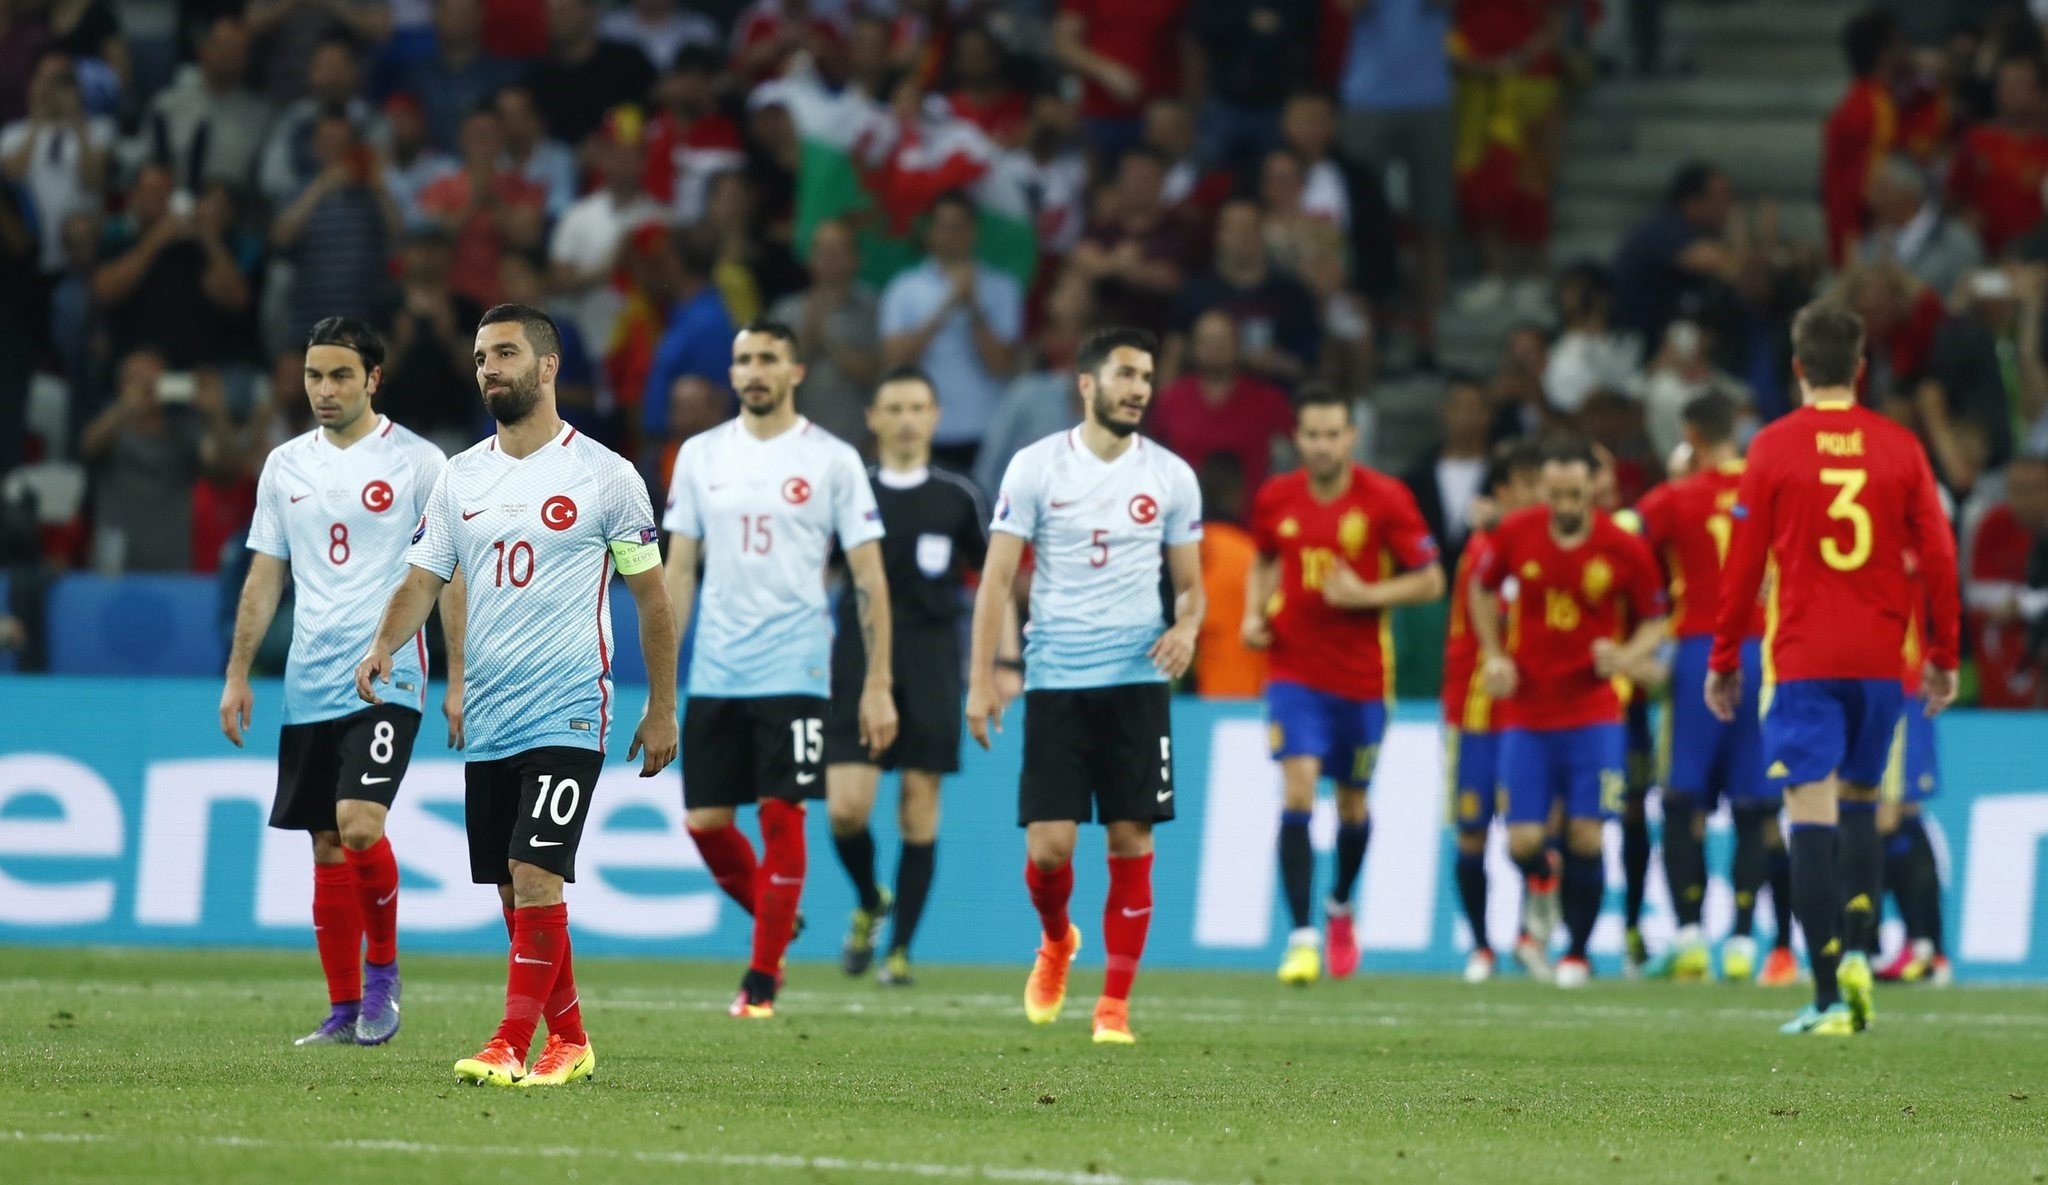 Turkey's Arda Turan reacts after Spain's Alvaro Morata (not pictured) scores their third goal  (REUTERS Photo)